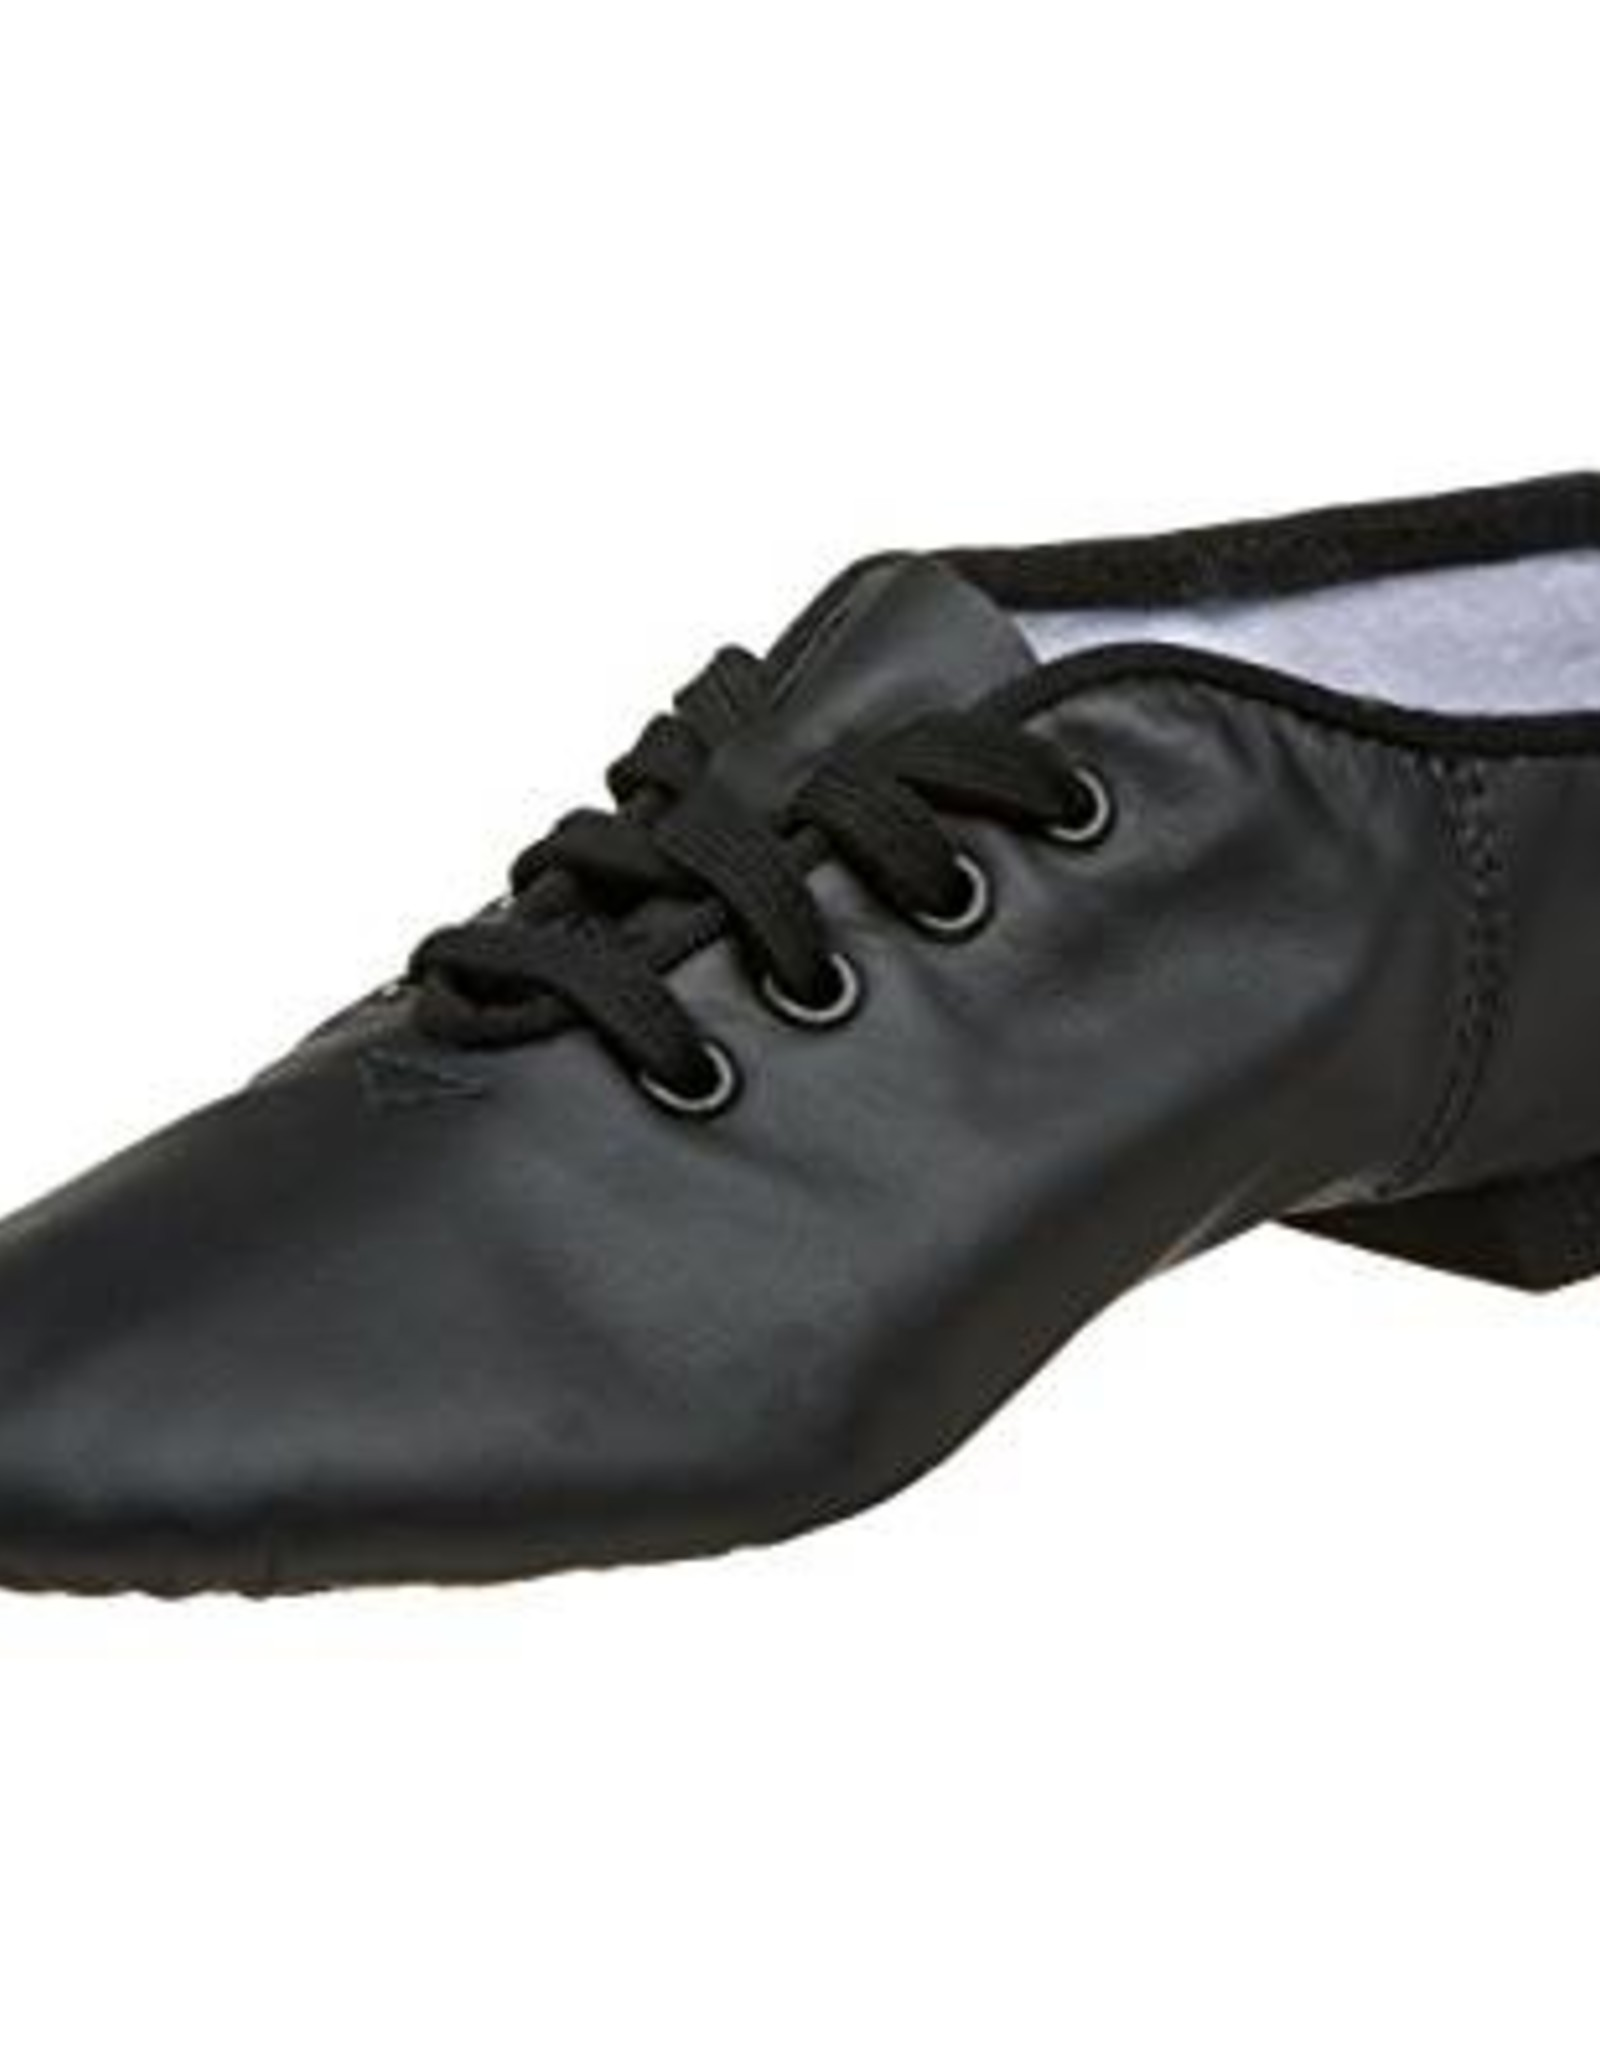 CAPEZIO LEATHER SPLIT SOLE JAZZ SHOES (CG02)